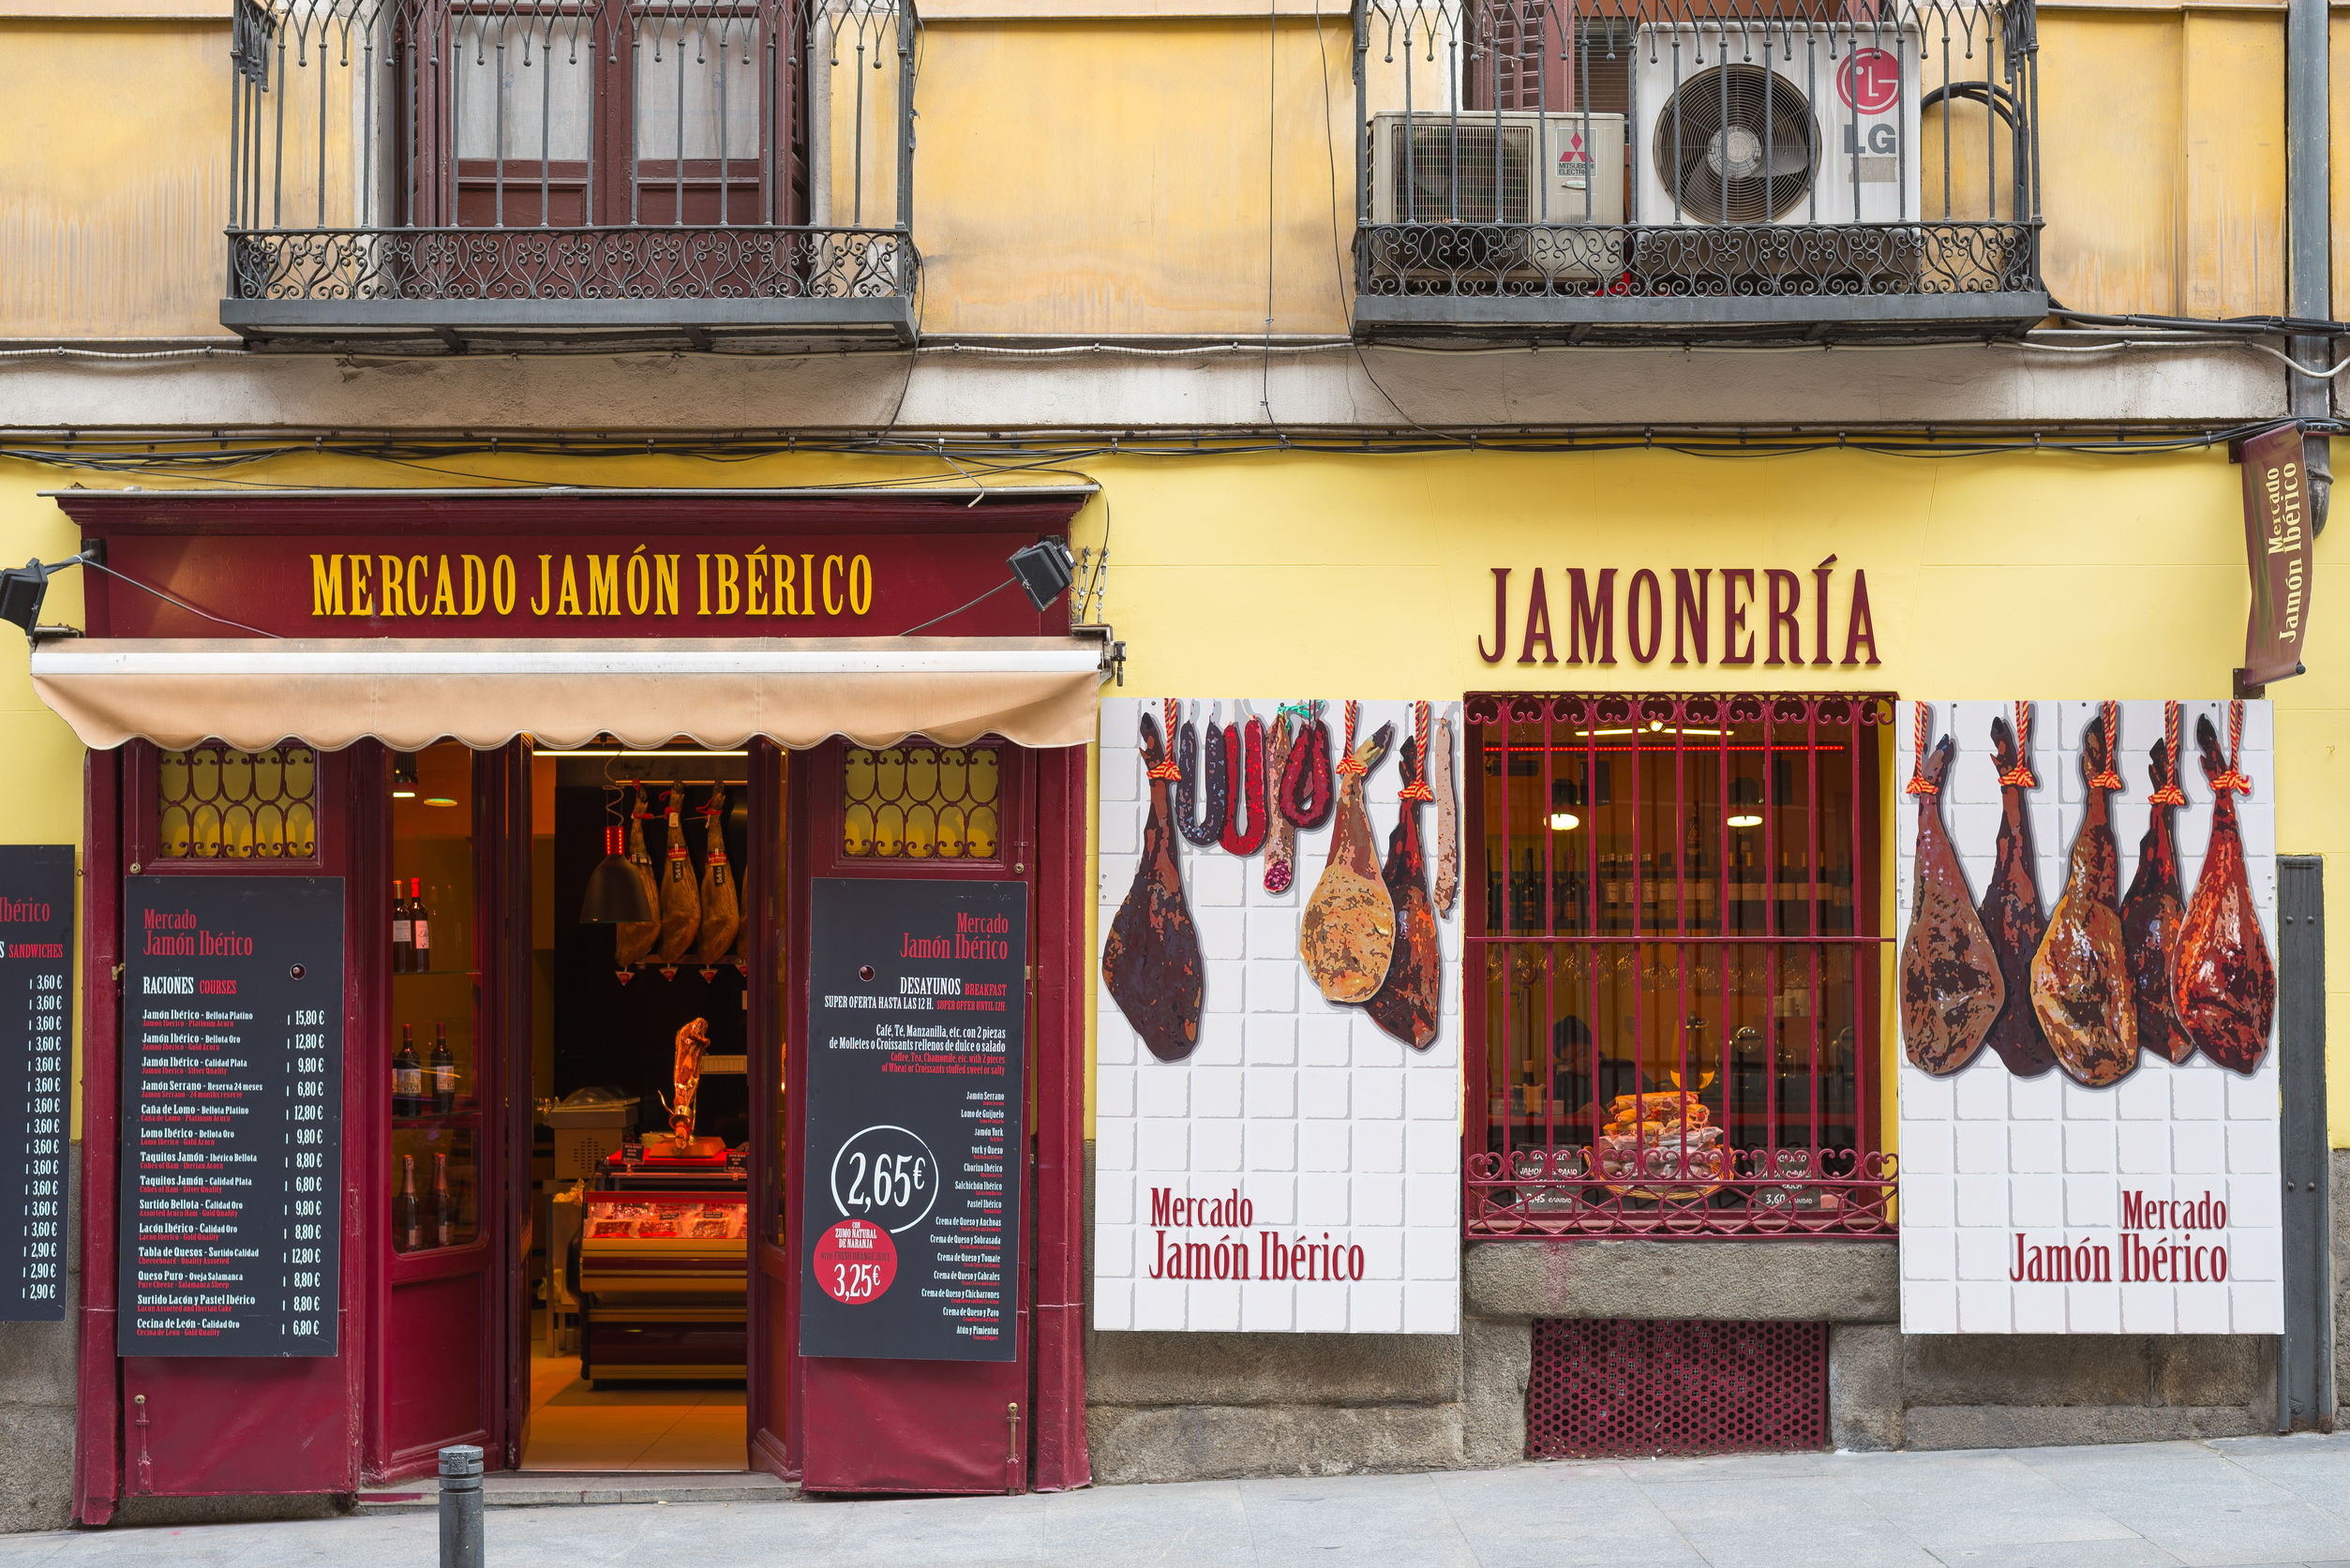 Store selling spanish ham catering to spanish-speaking customers